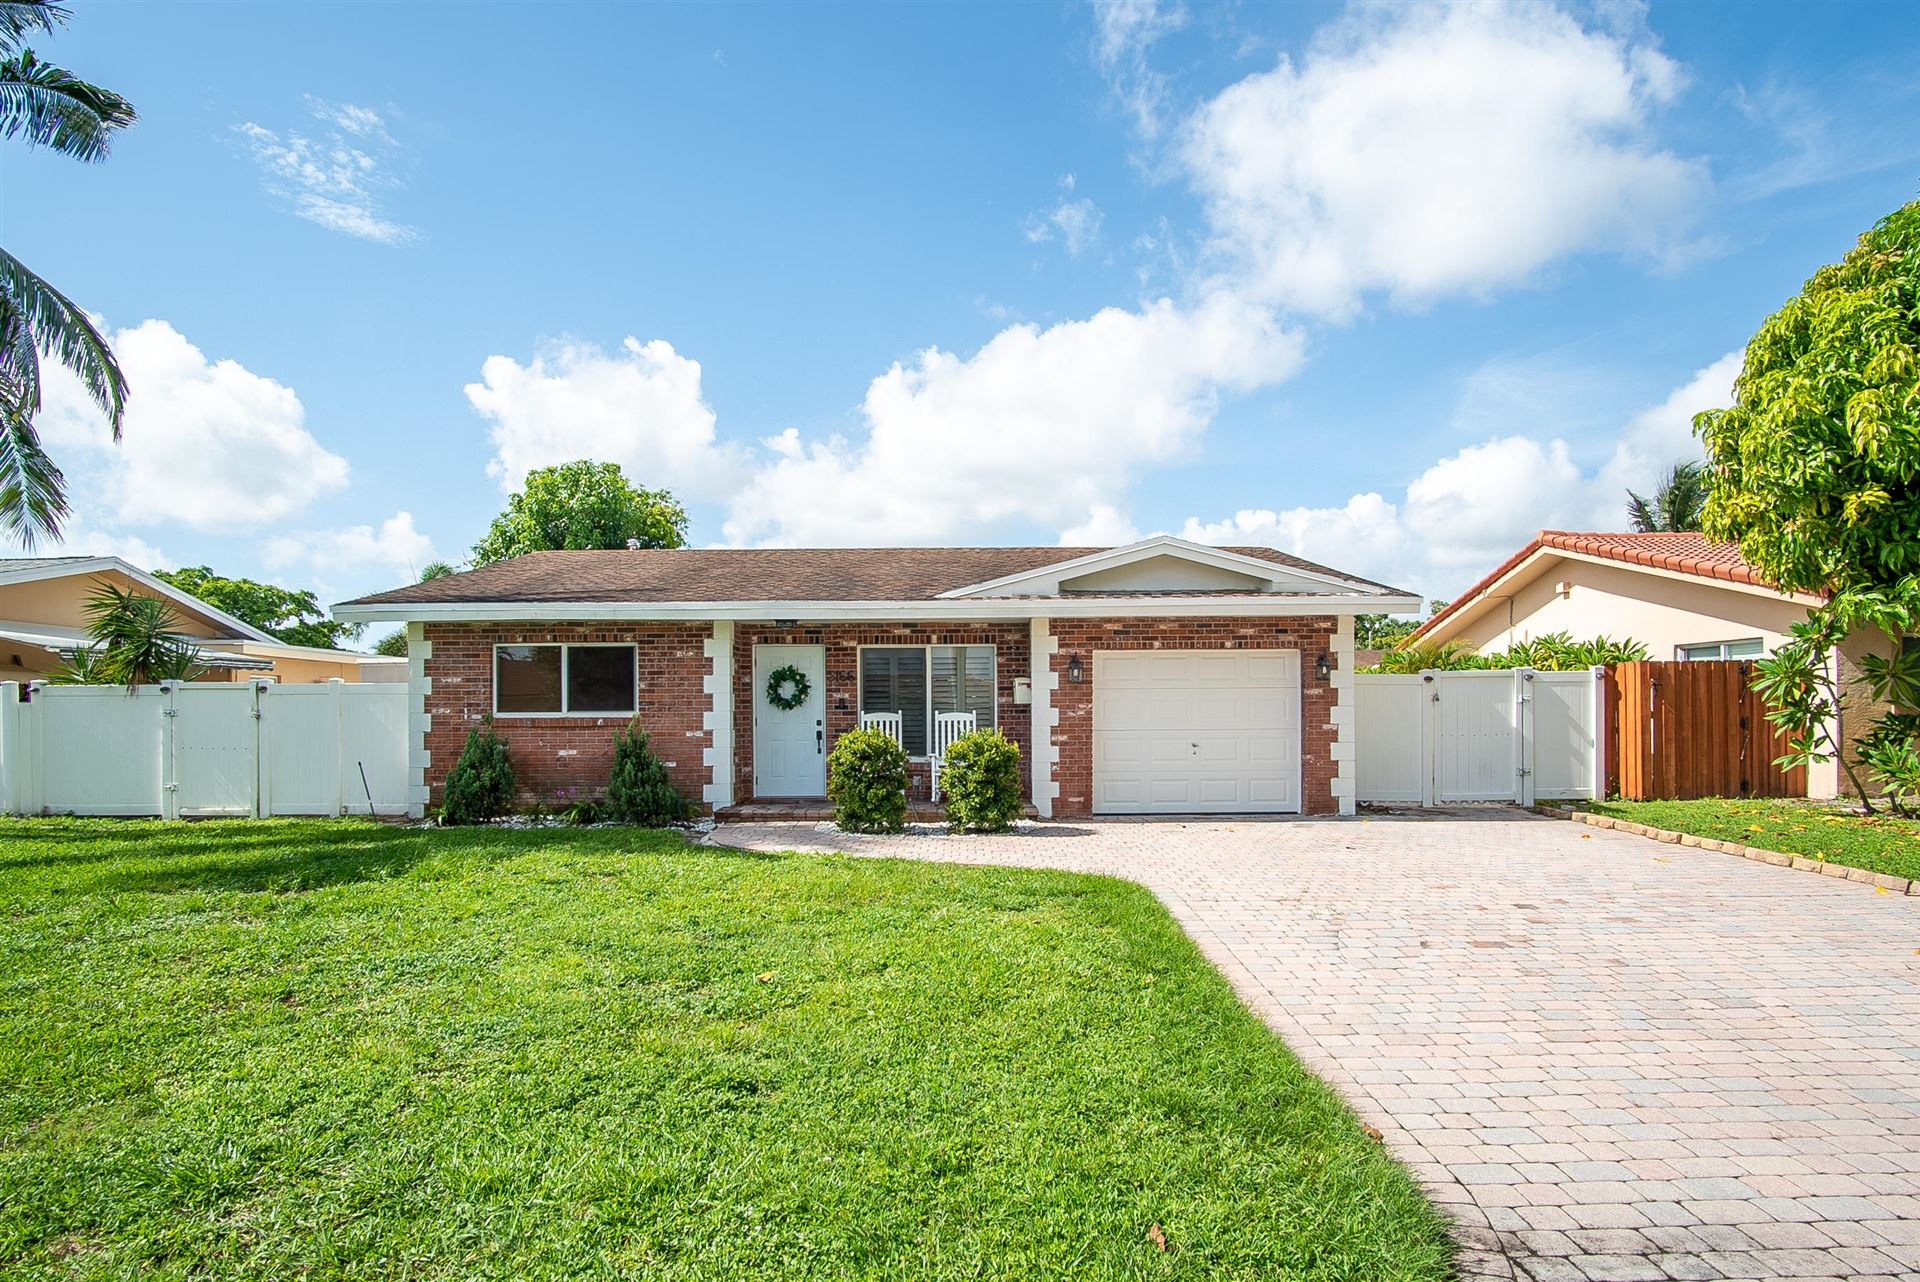 Photo of 3166 NW 68th Street, Fort Lauderdale, FL 33309 (MLS # RX-10732972)